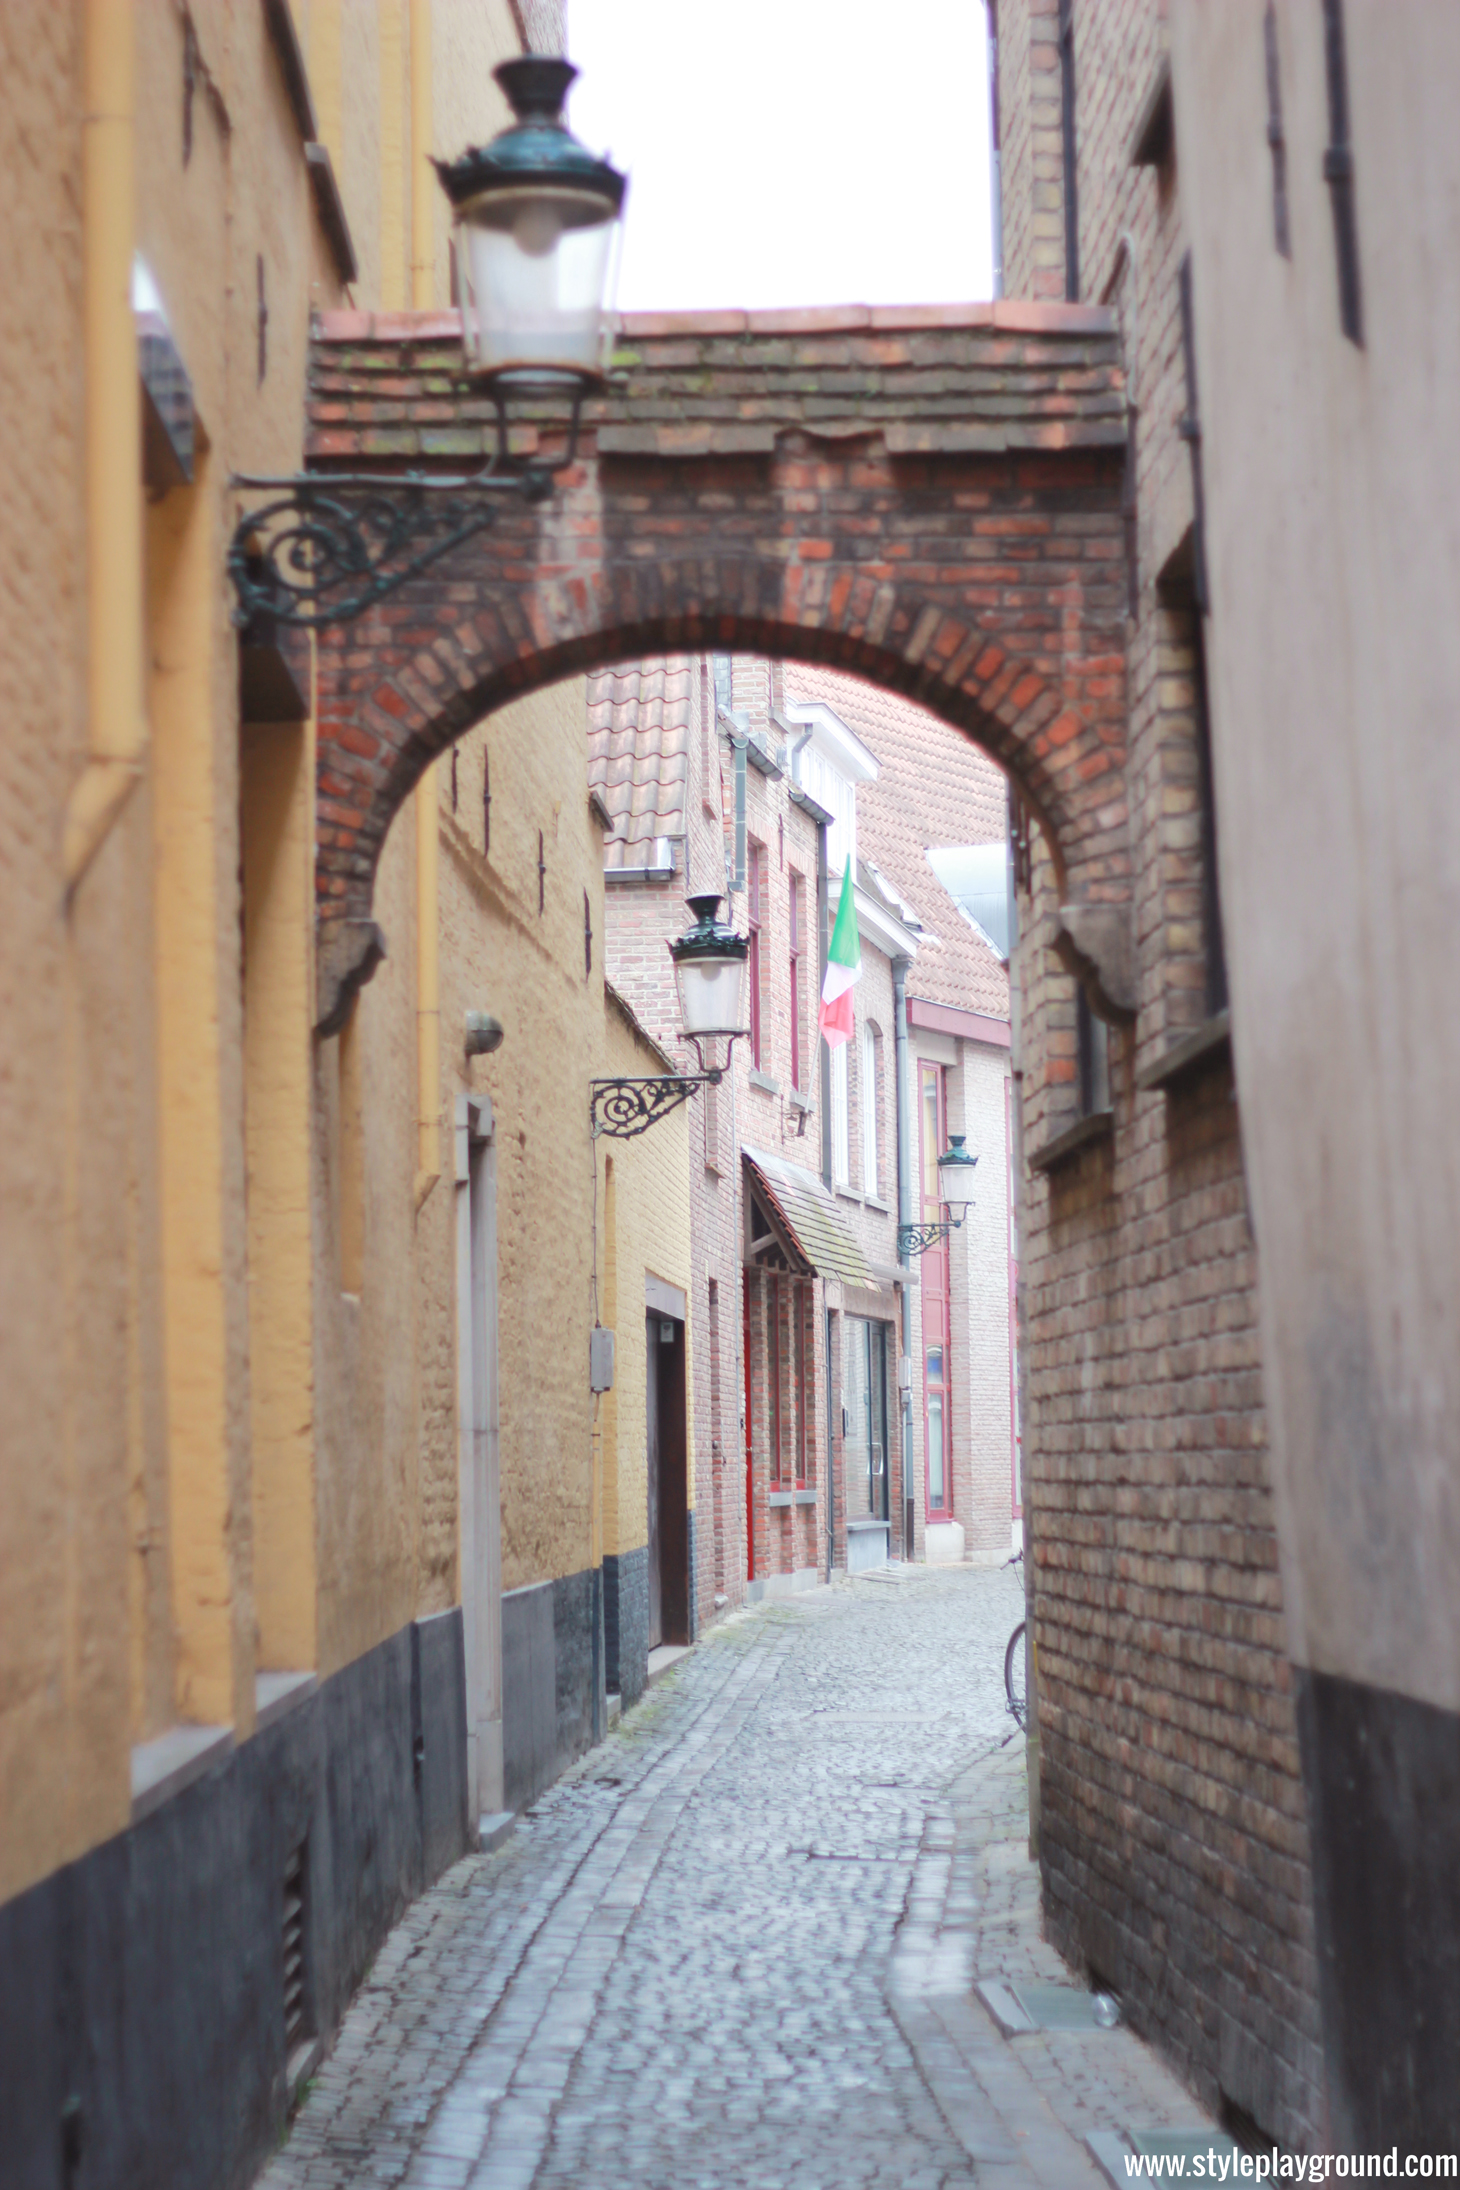 Axelle Blanpain of Style playground shares photos & tips from her weekend trip to Bruges, Belgium